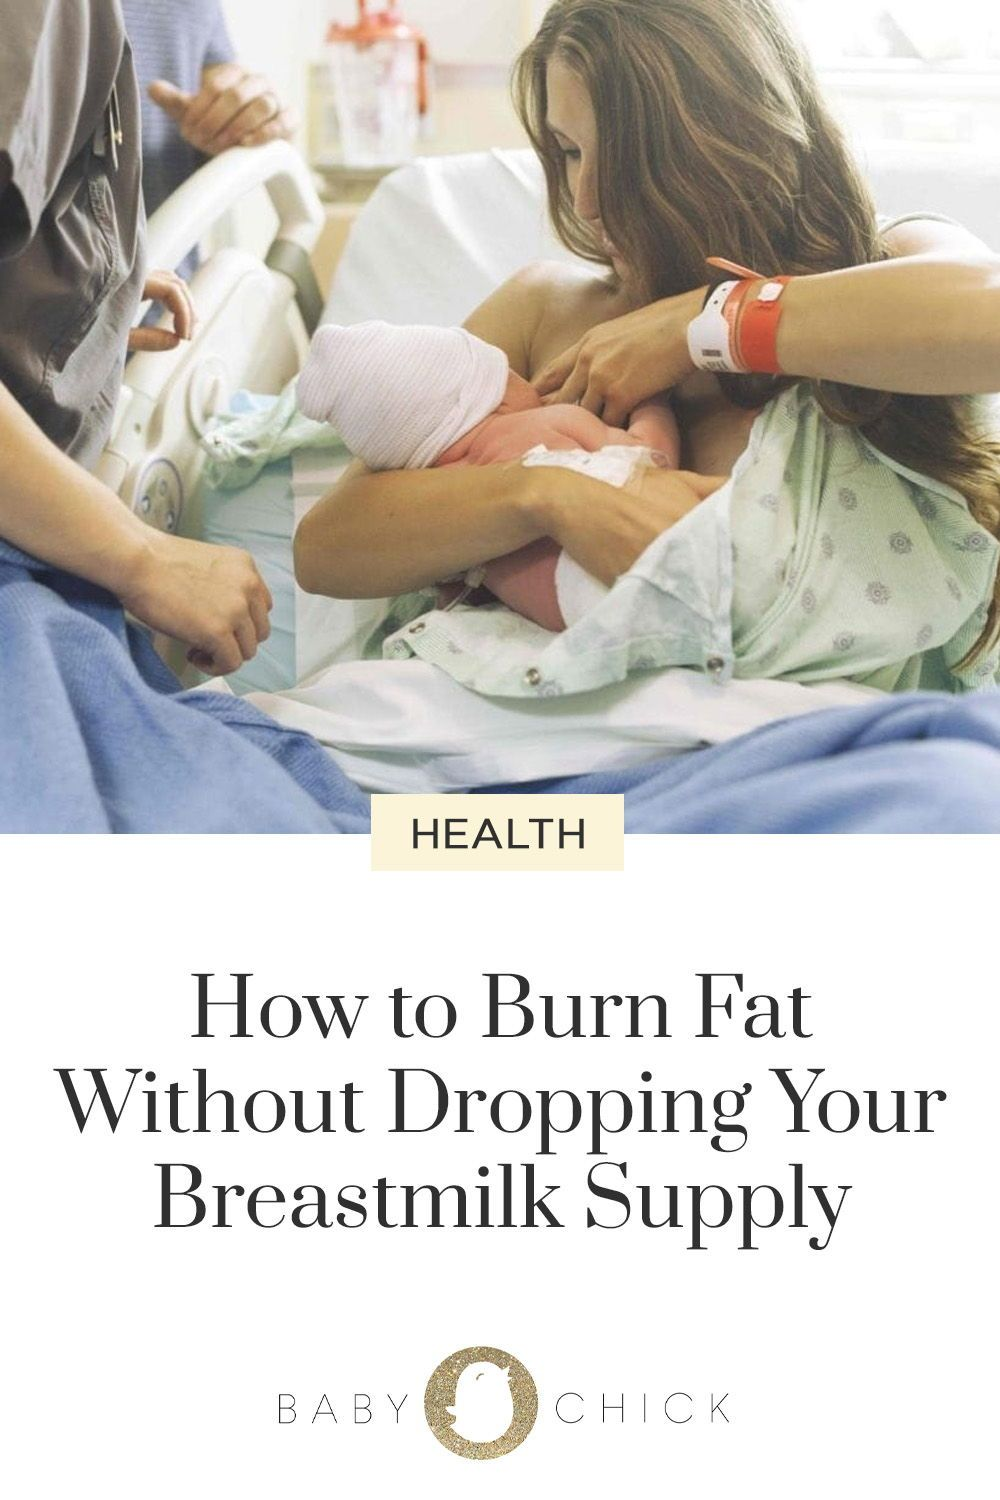 Can Girl Get Breast Milk Without Pregnancy